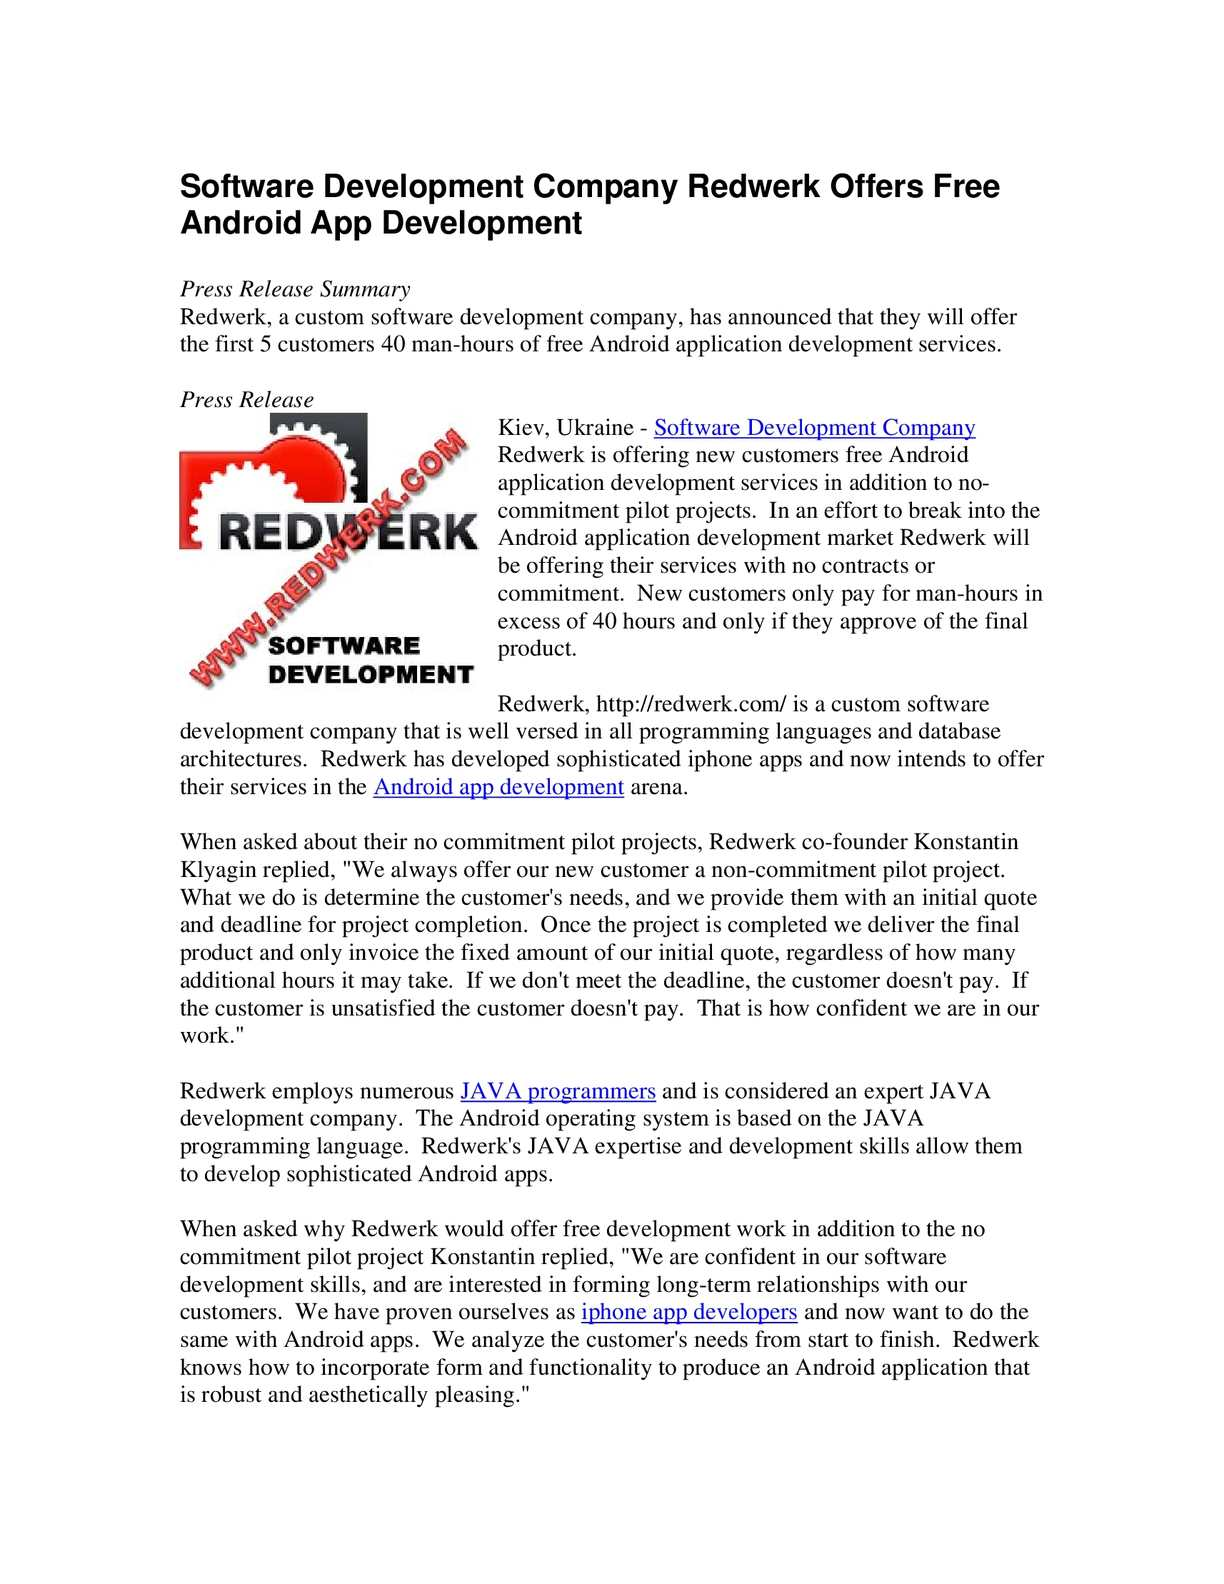 Calaméo - Software Development Company Redwerk Offers Free Android